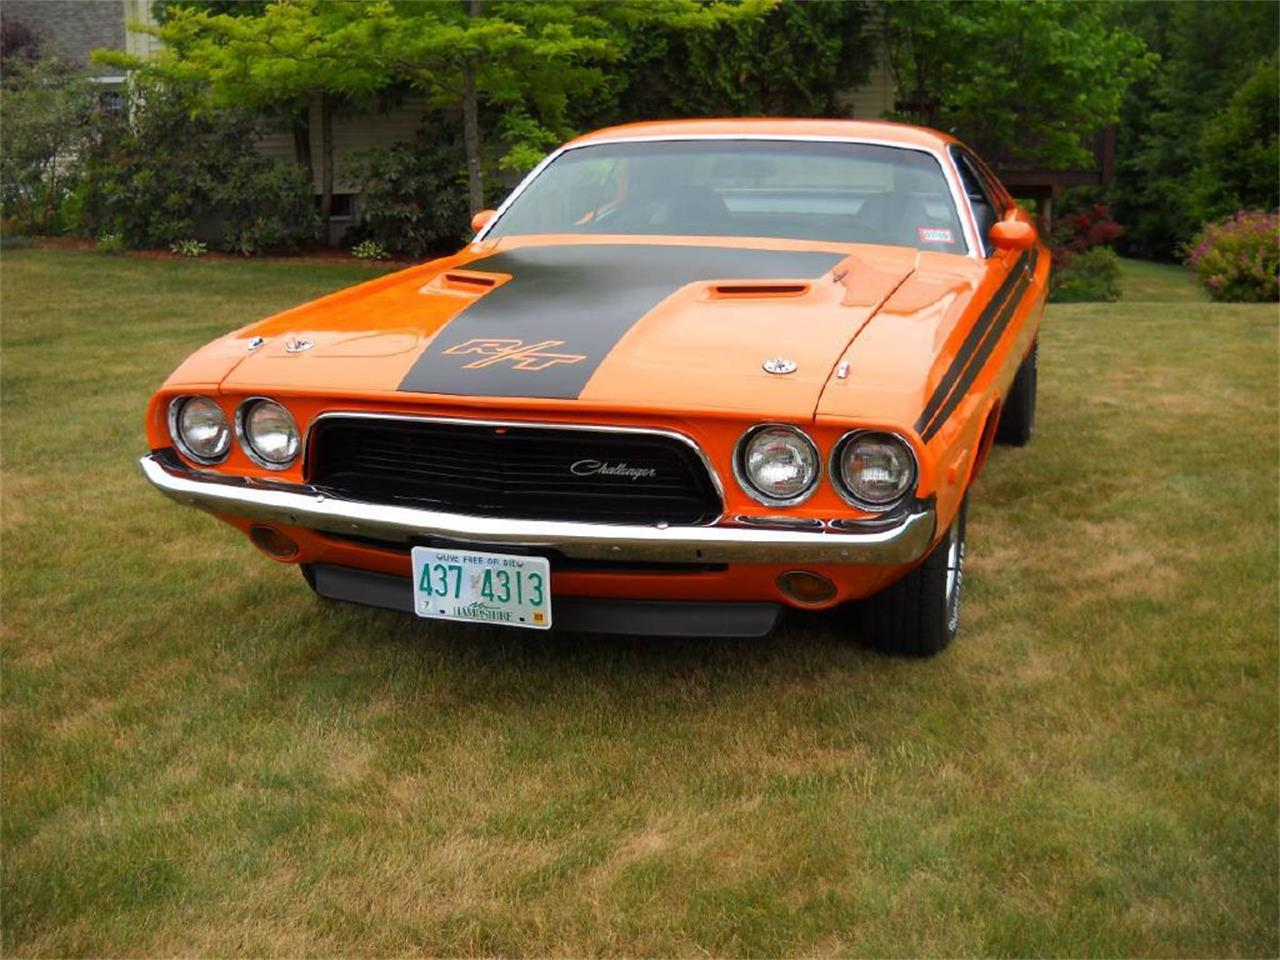 for sale 1973 dodge challenger in west pittston, pennsylvania cars - pittston, pa at geebo